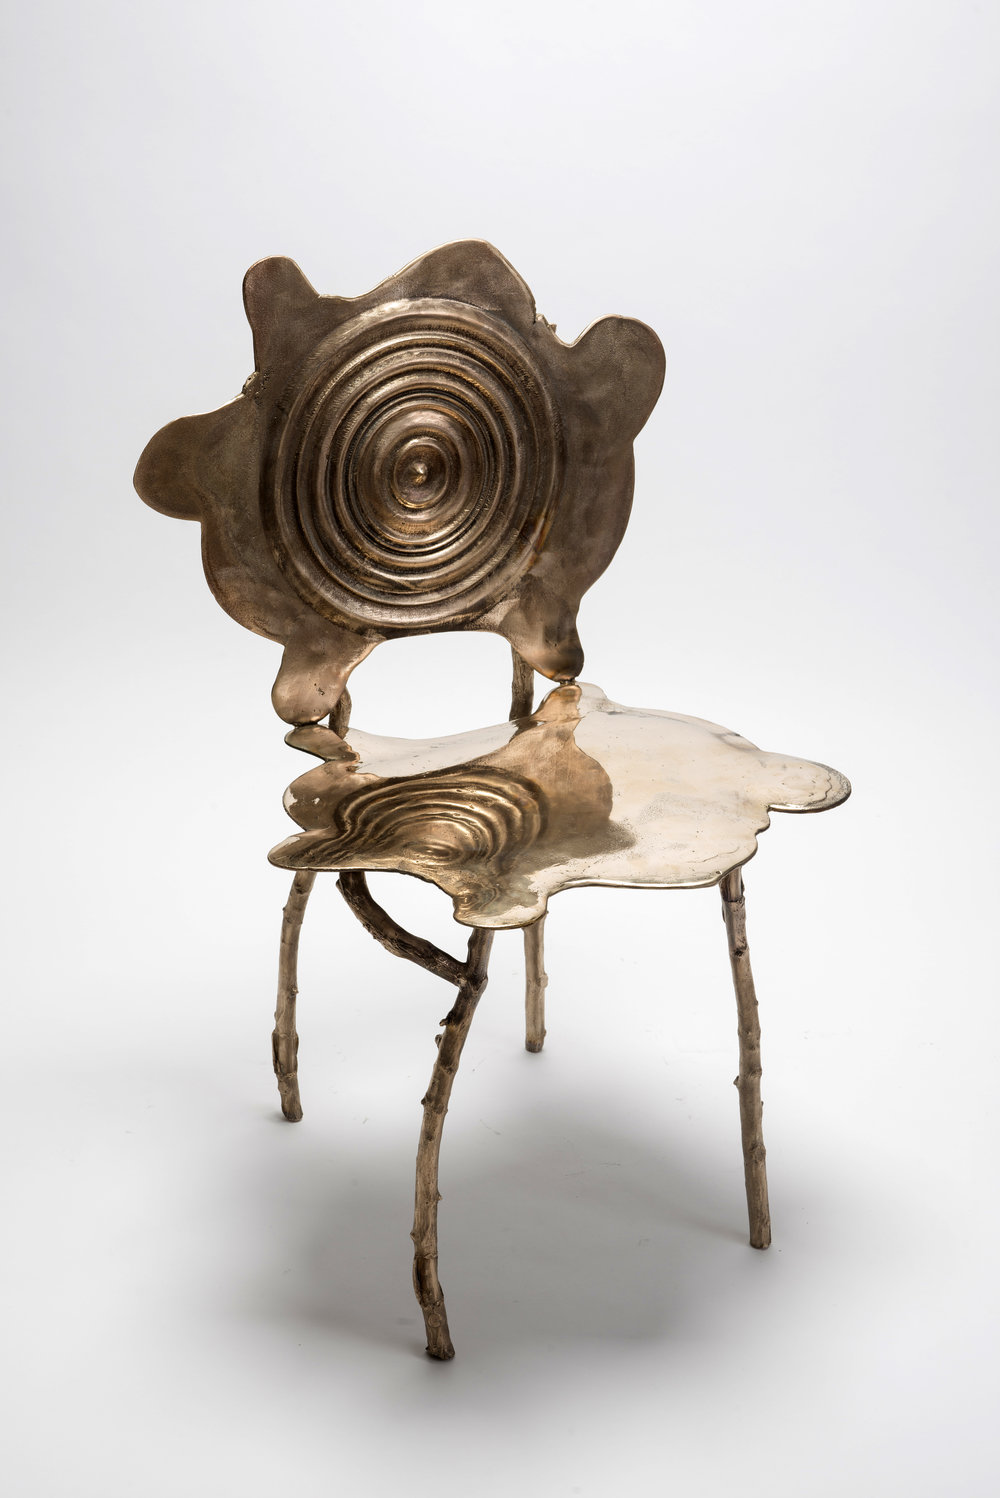 GREGORY NANGLE  Ripple Rorschach Chair, 2018  Low polish cast bronze  24 x 20 x 38 in (seat height: 19 in)